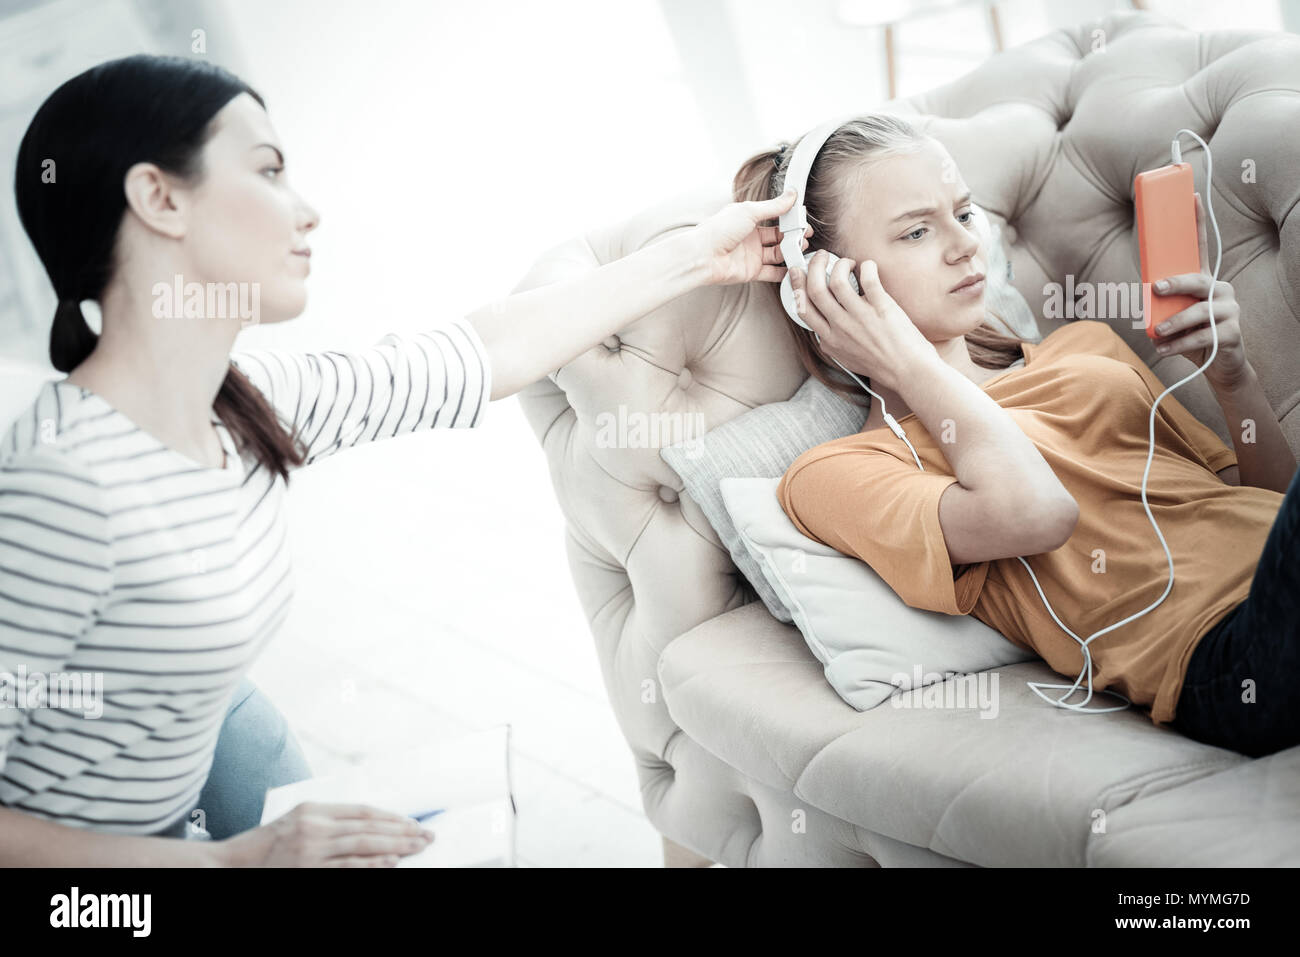 Mad teen girl immersing in music during therapy - Stock Image